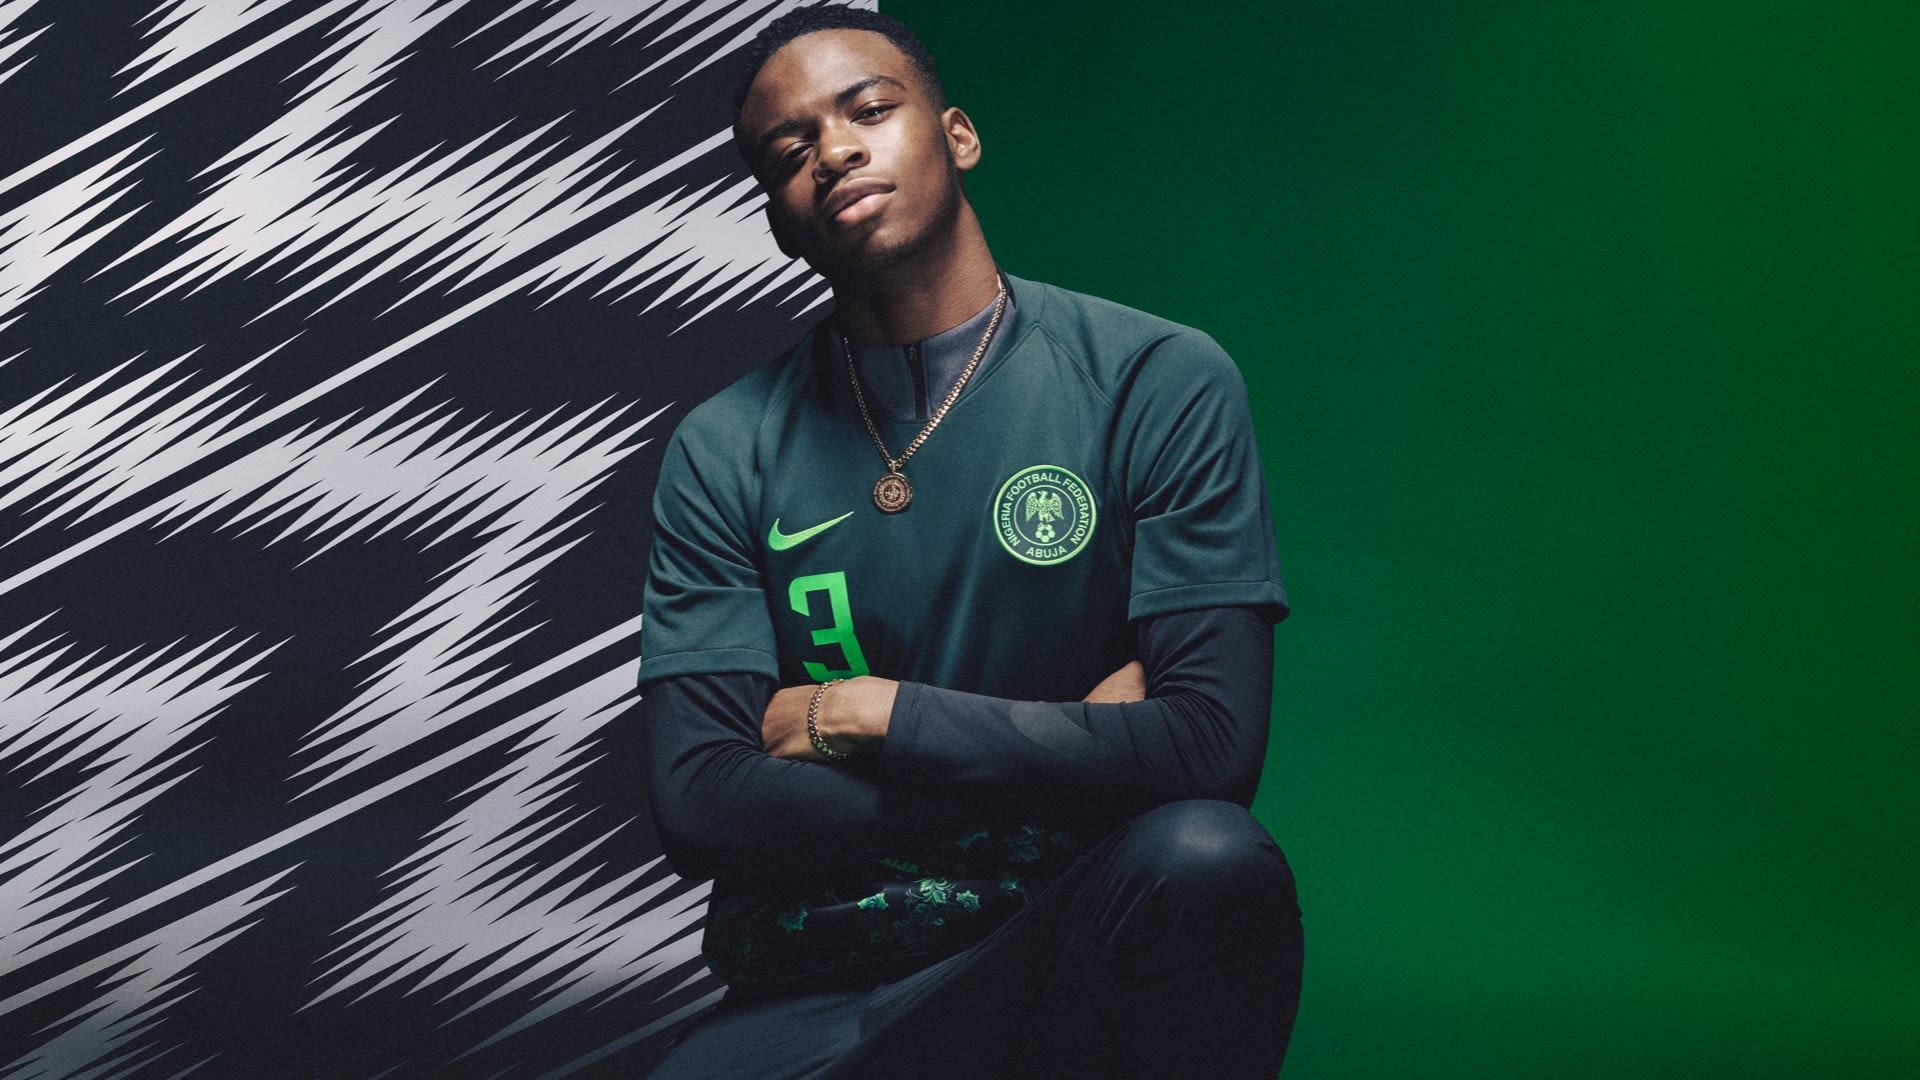 NAIJA Nigeria World Cup Nike Kits Jerseys Collection Matthew Wolff Design 2018 Super Eagles